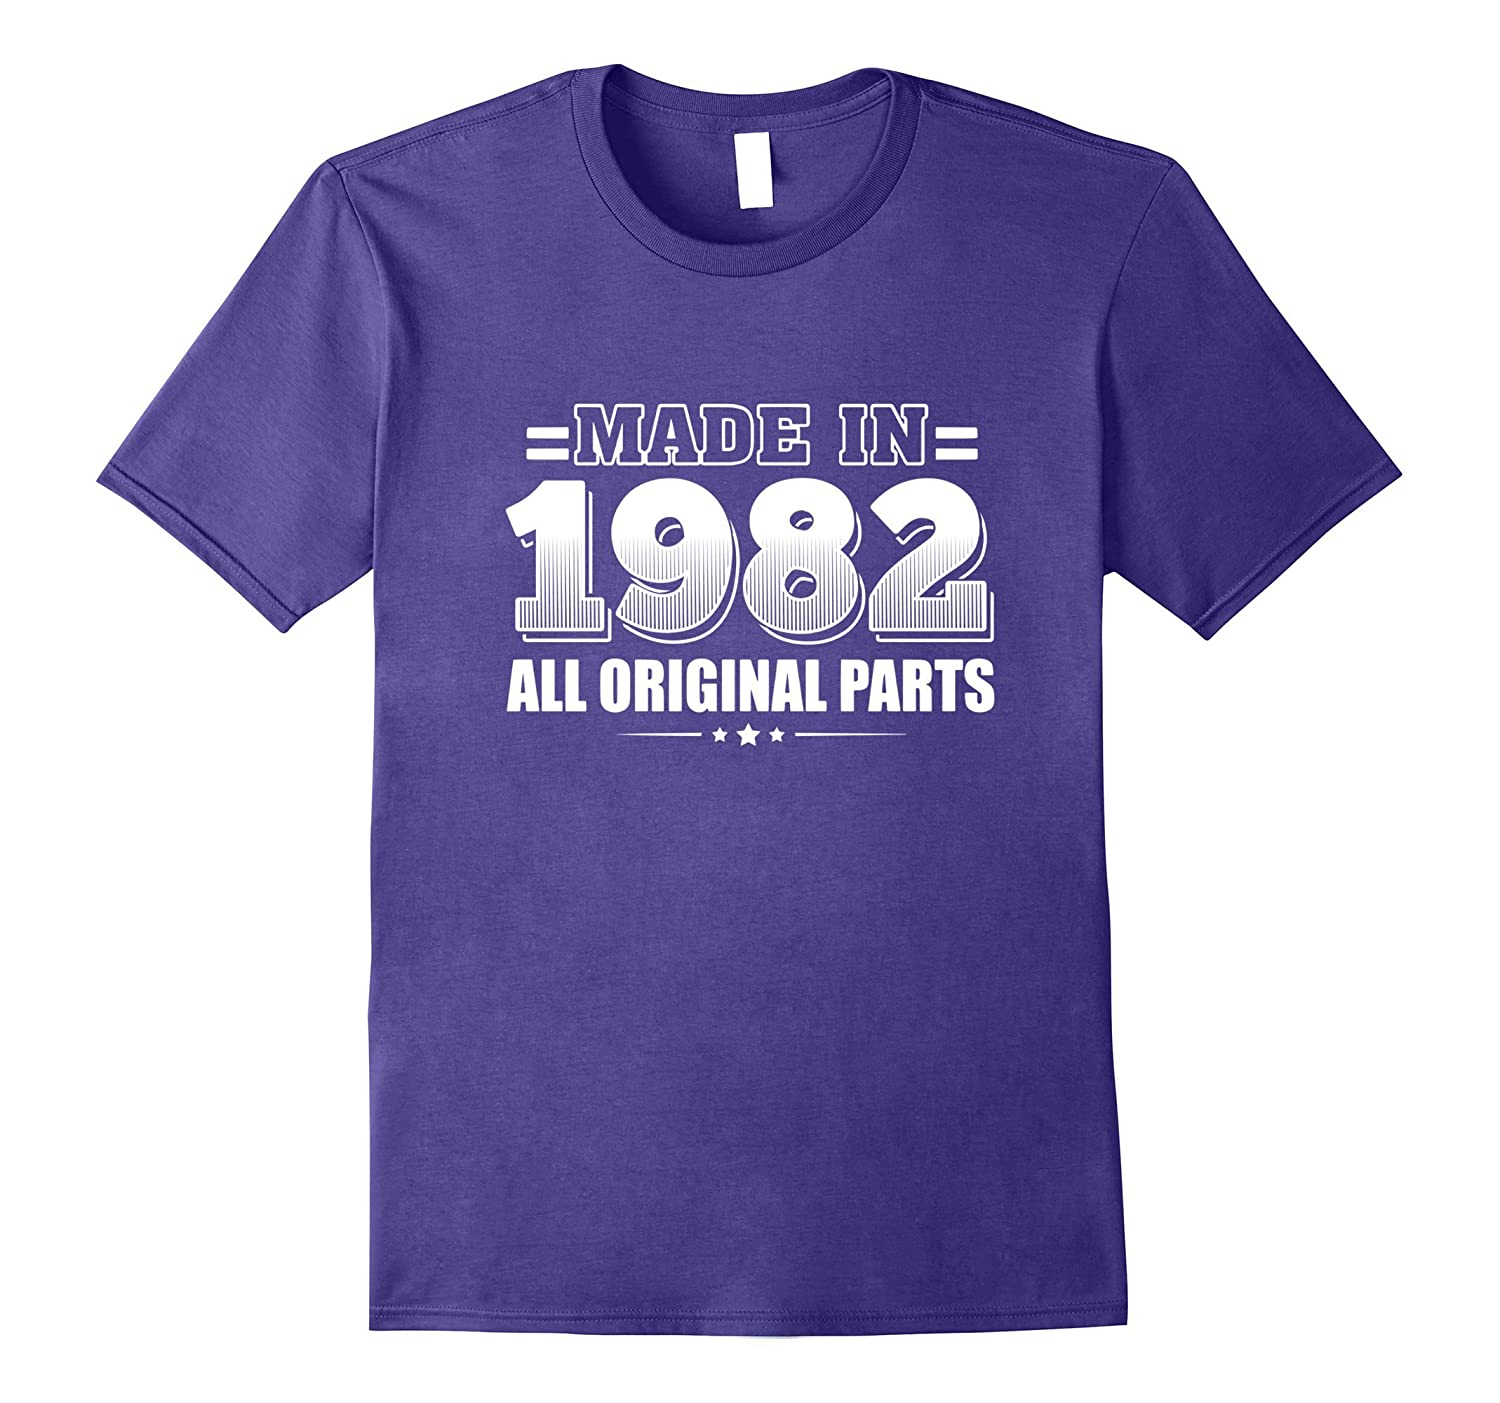 Made in 1982 All Original Parts T-shirt - 35th Birthday Gift-Vaci